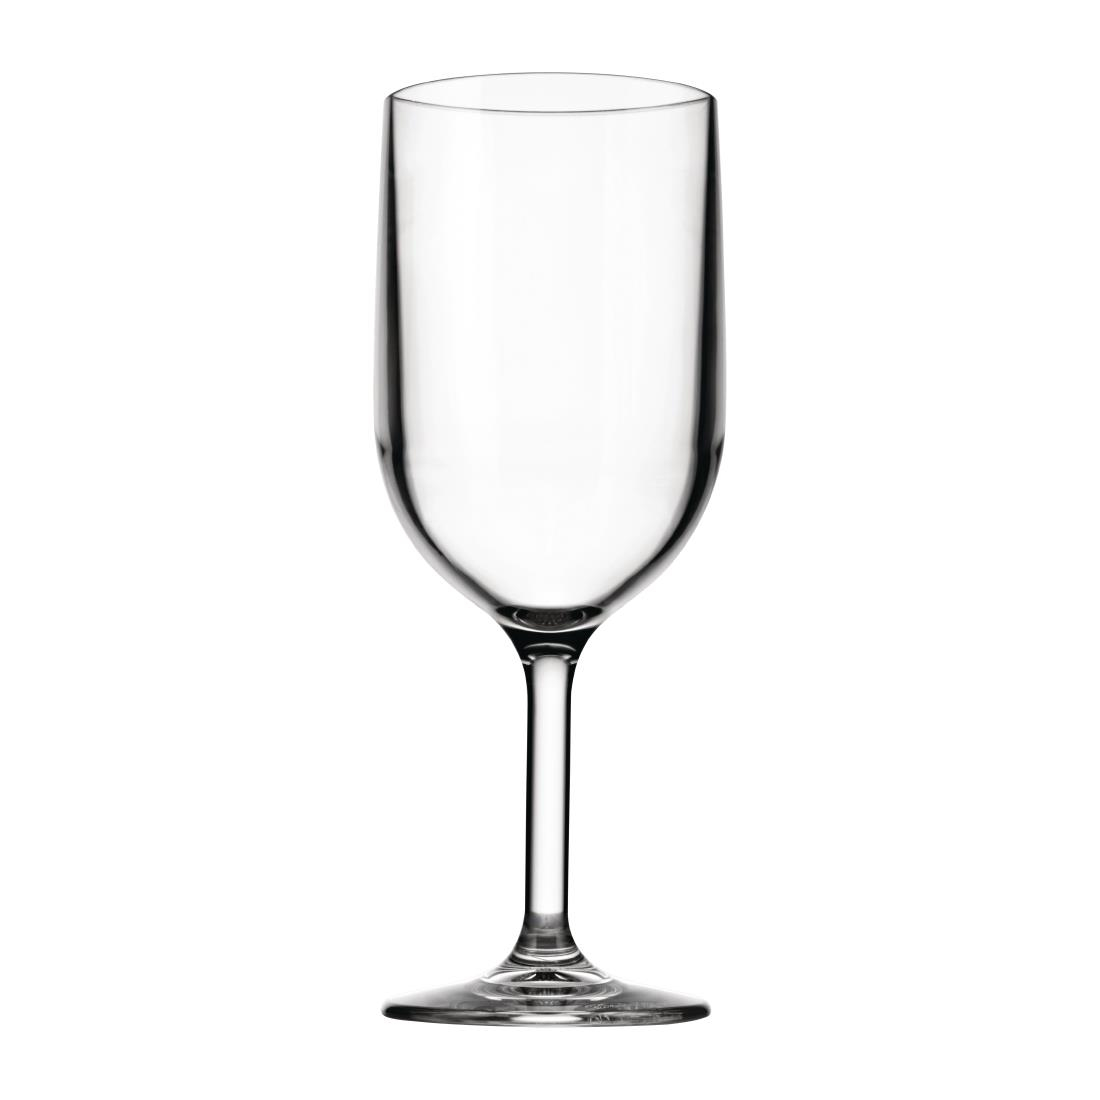 Image of Drinique Elite Tritan Stemmed Wine Glasses Clear 340ml (Pack of 24) Pack of 24